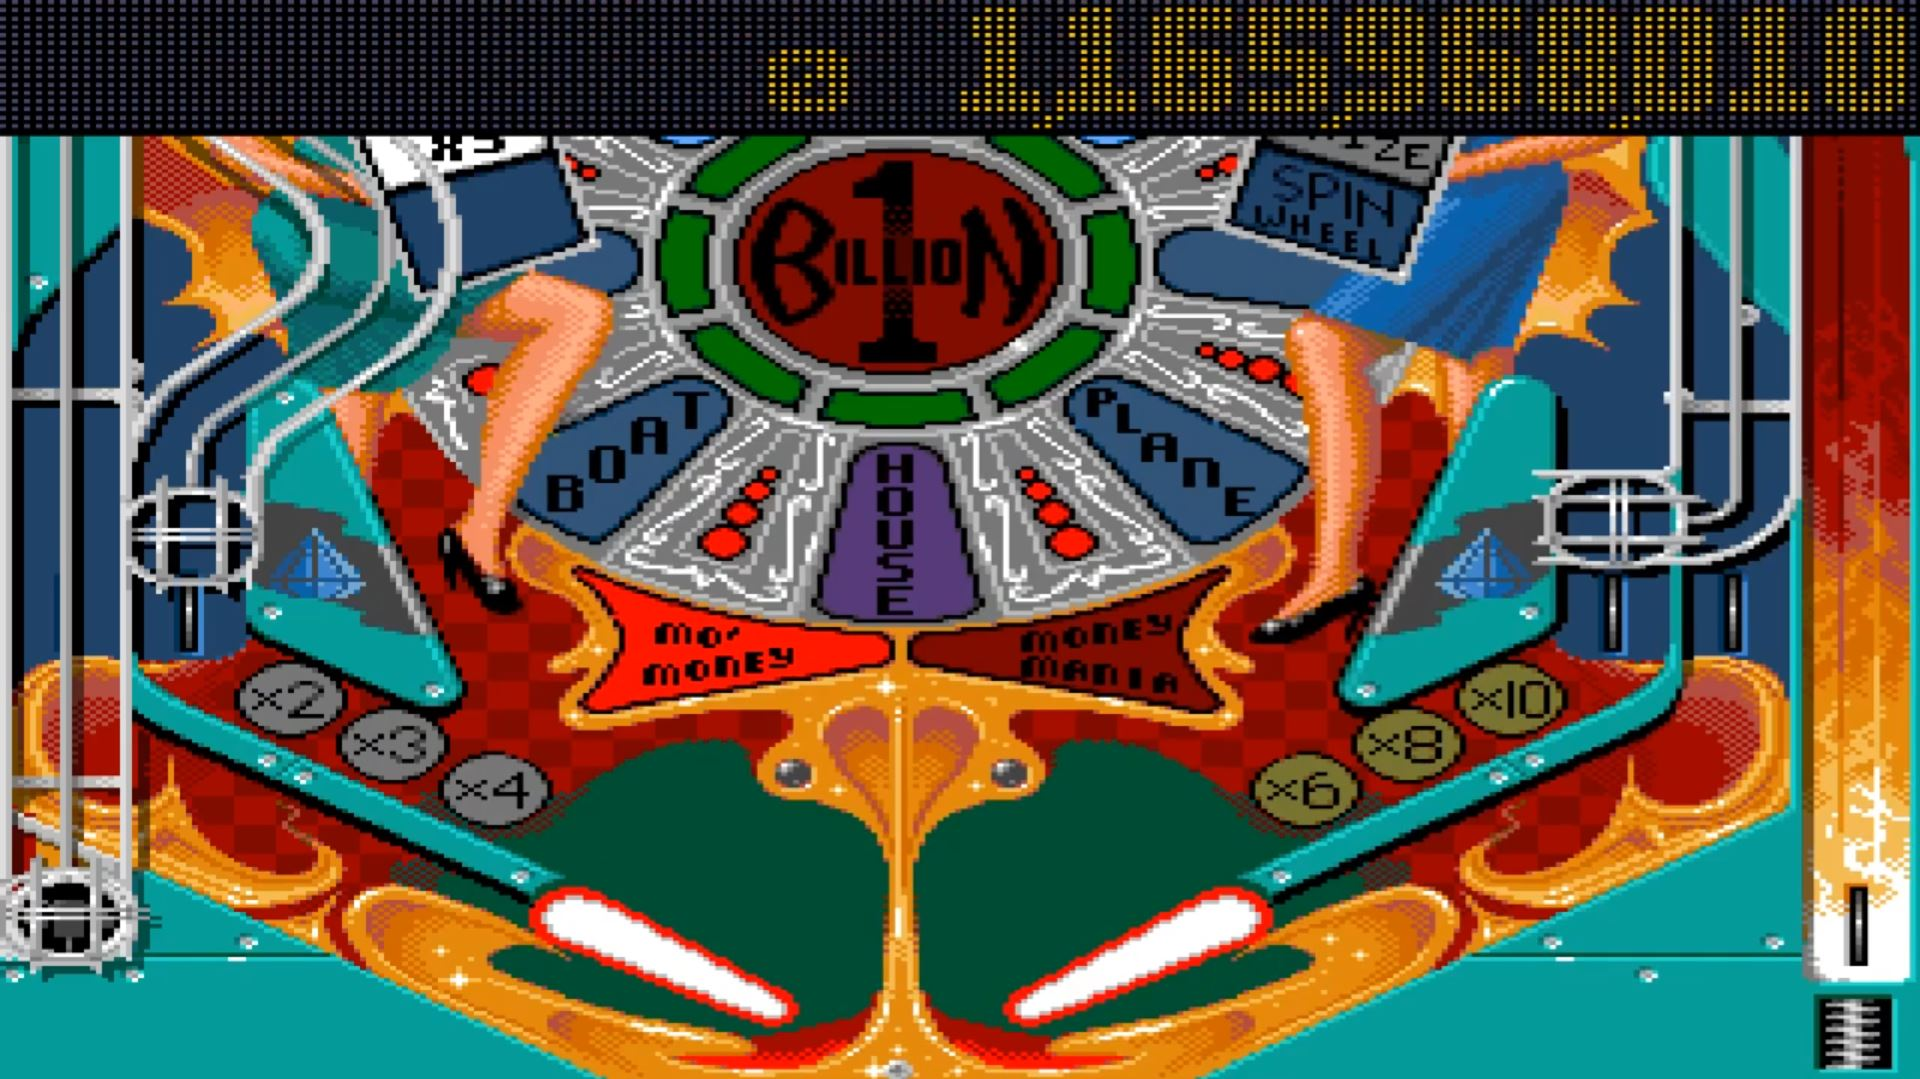 TheTrickster: Pinball Fantasies: Billion Dollar Gameshow (Amiga Emulated) 1,165,968,010 points on 2016-11-01 01:21:03